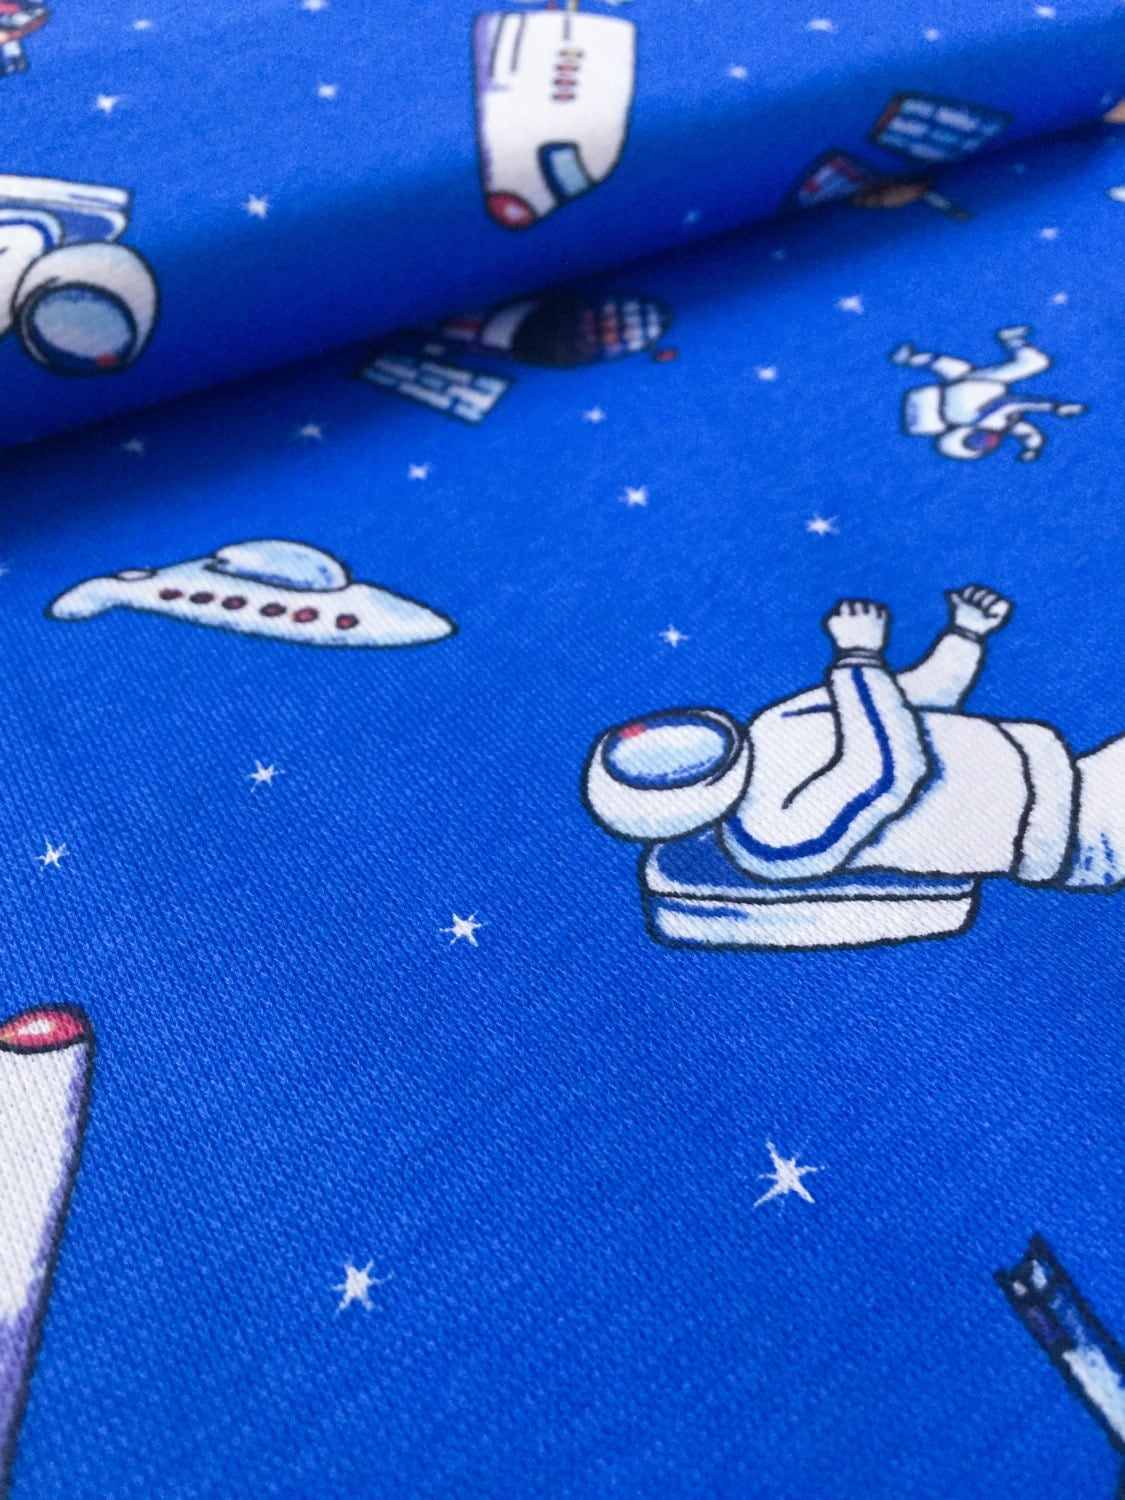 Outer space cotton knit fabric for Outer space fabric by the yard